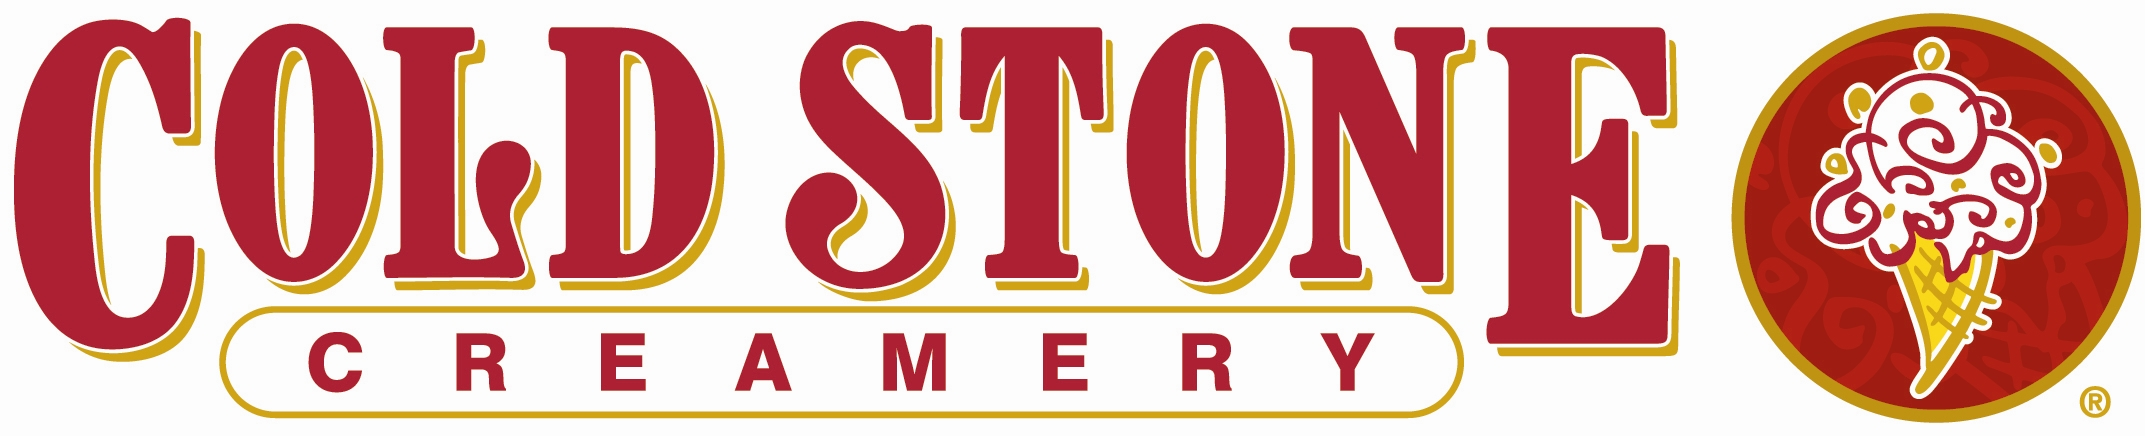 Discounts average $5 off with a Cold Stone Creamery promo code or coupon. 16 Cold Stone Creamery coupons now on RetailMeNot.